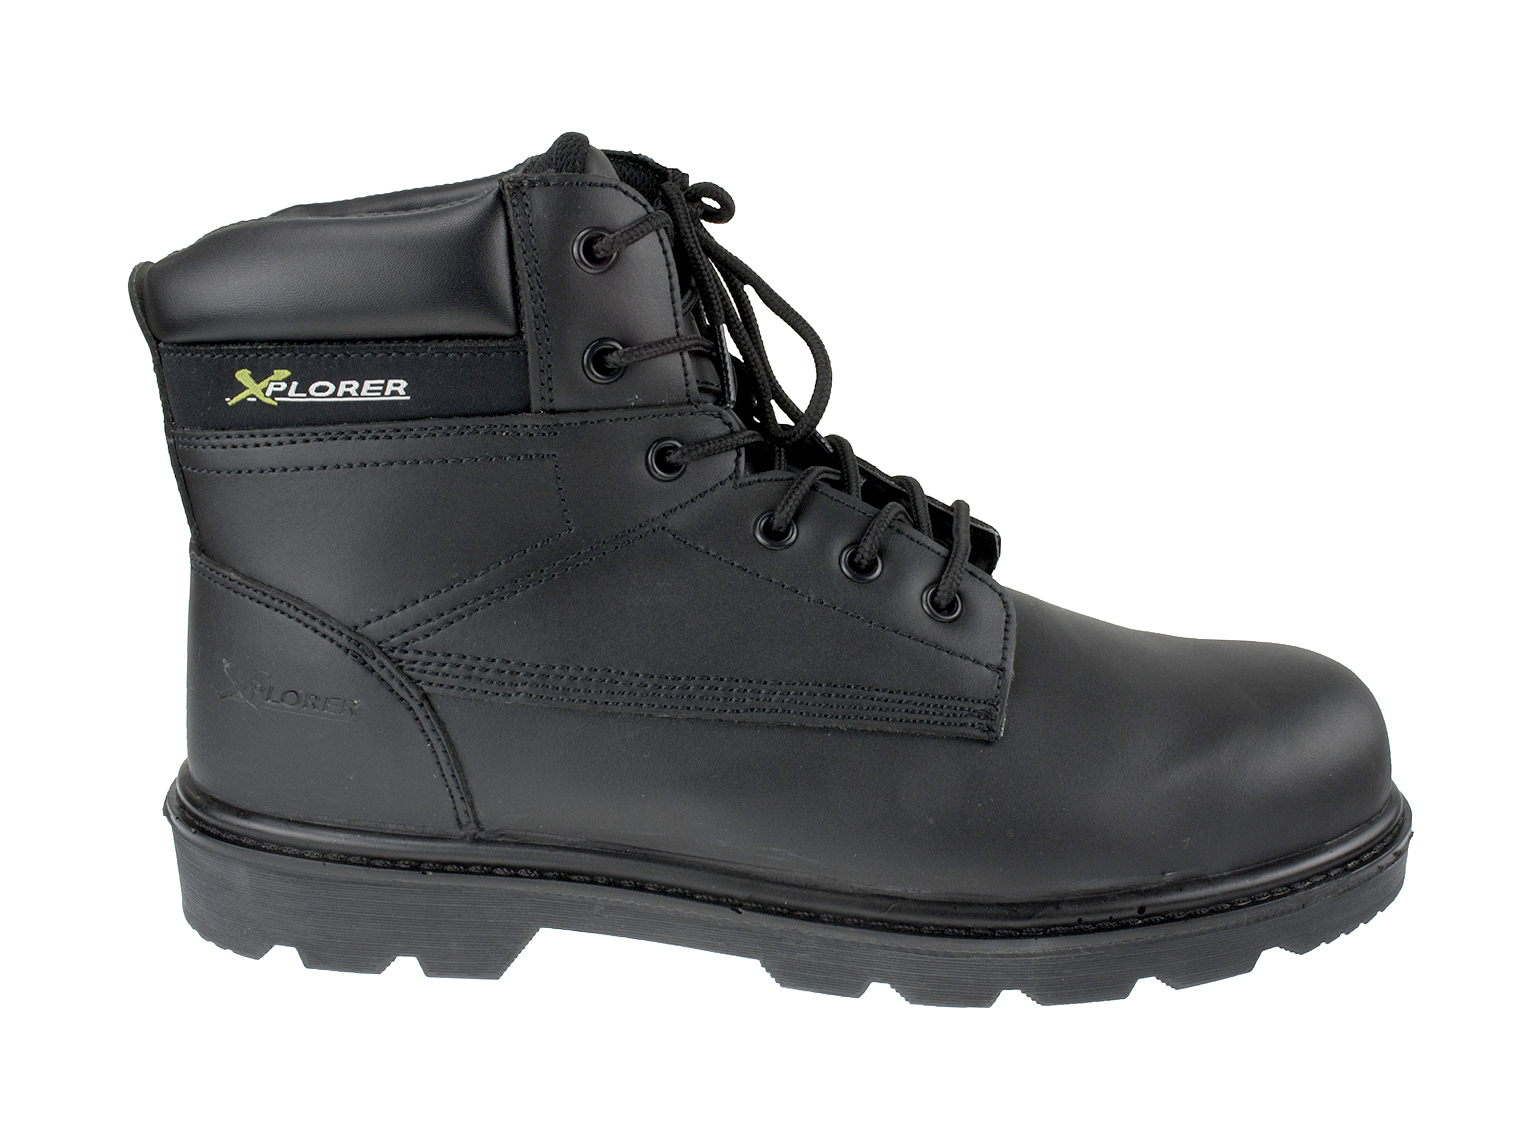 Xplorer Leather Safety Boot w/ Padded ankle support and protection - main